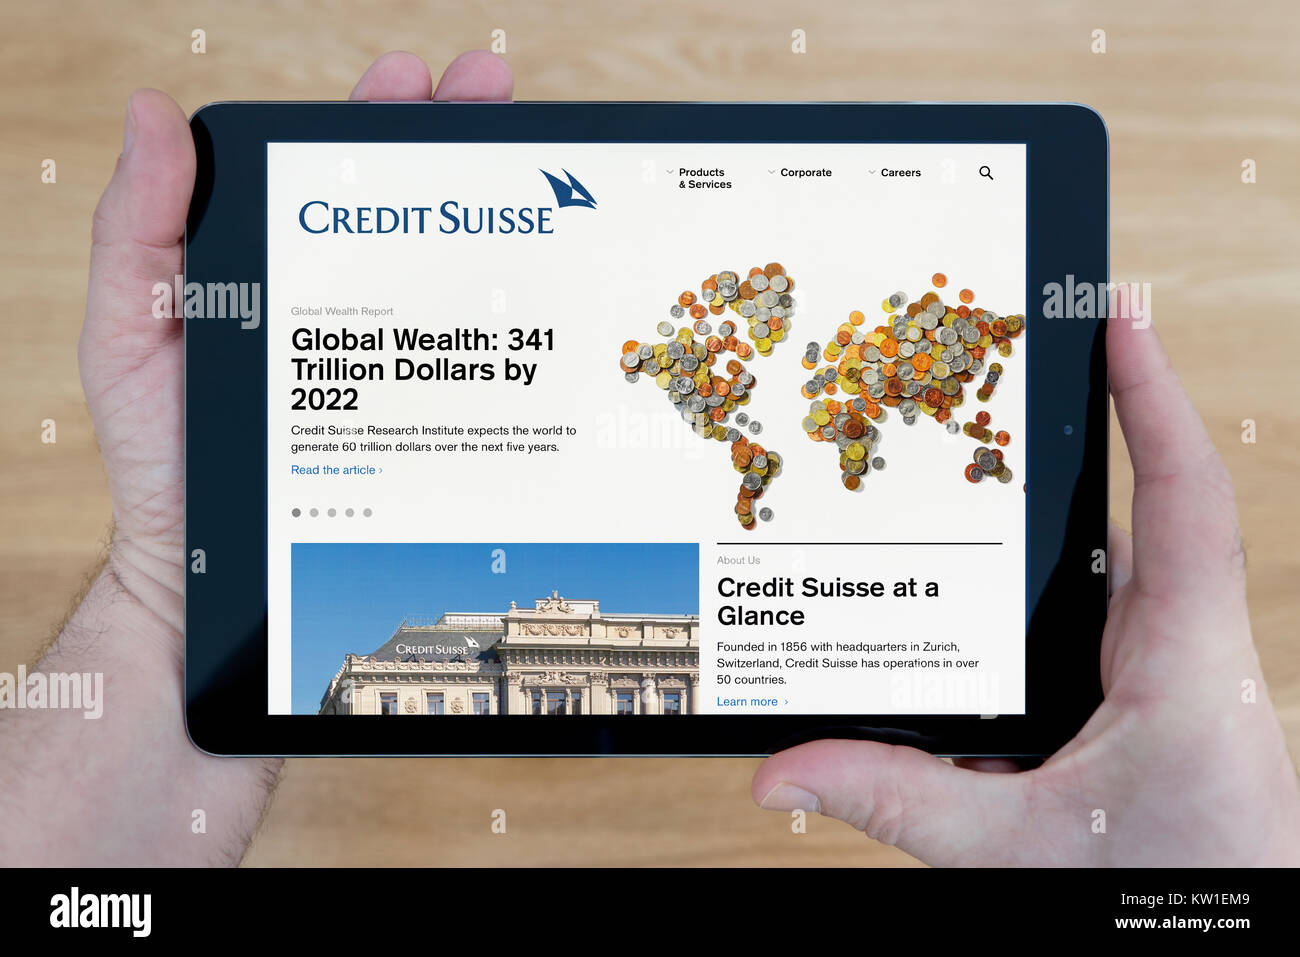 A man looks at the Credit Suisse Bank website on his iPad tablet device, shot against a wooden table top background - Stock Image